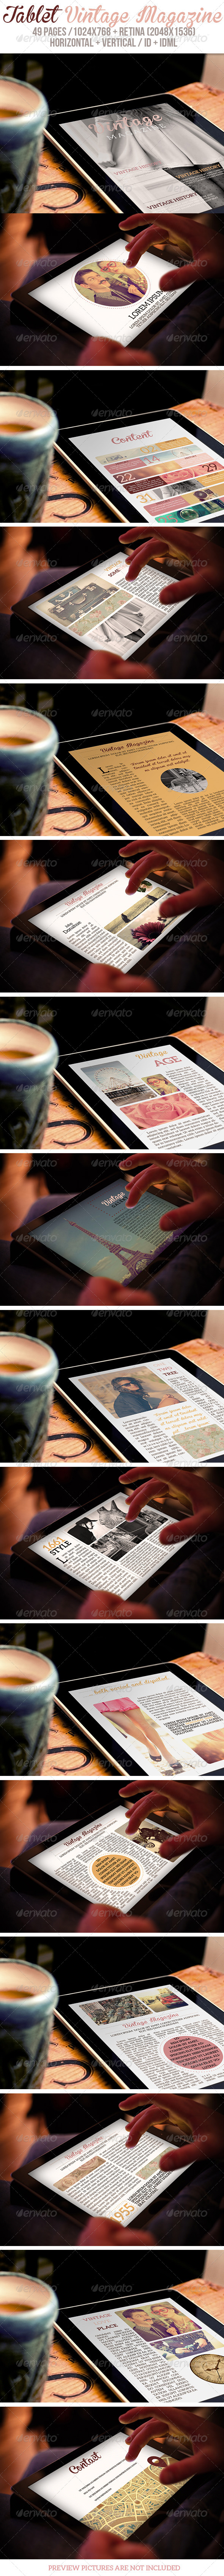 GraphicRiver Tablet Vintage Magazine 6474325